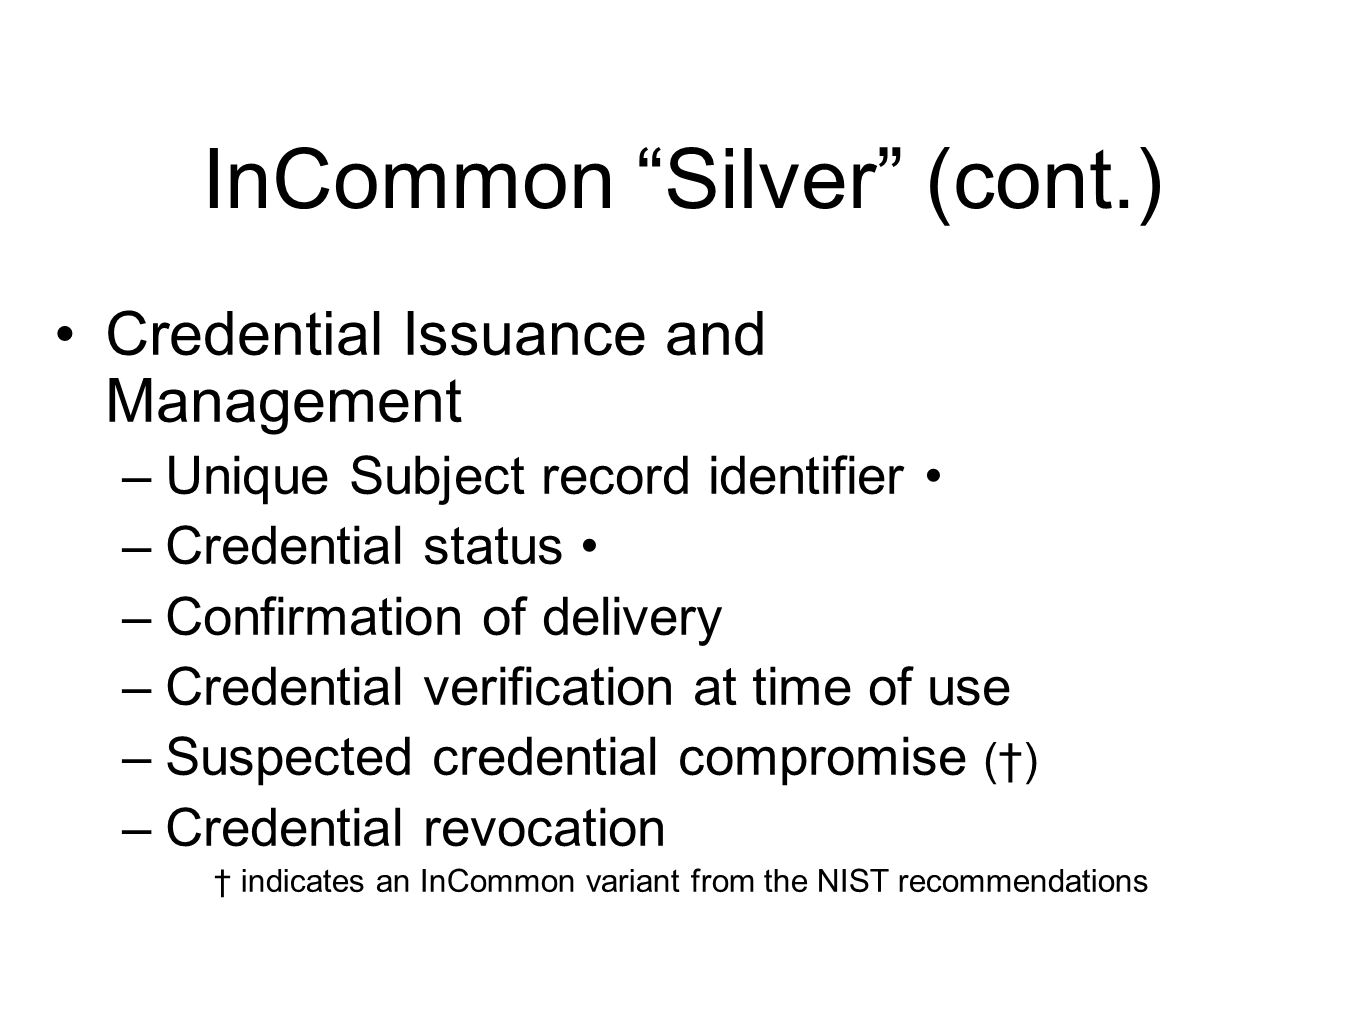 InCommon Silver (cont.) Credential Issuance and Management –Unique Subject record identifier –Credential status –Confirmation of delivery –Credential verification at time of use –Suspected credential compromise (†) –Credential revocation † indicates an InCommon variant from the NIST recommendations